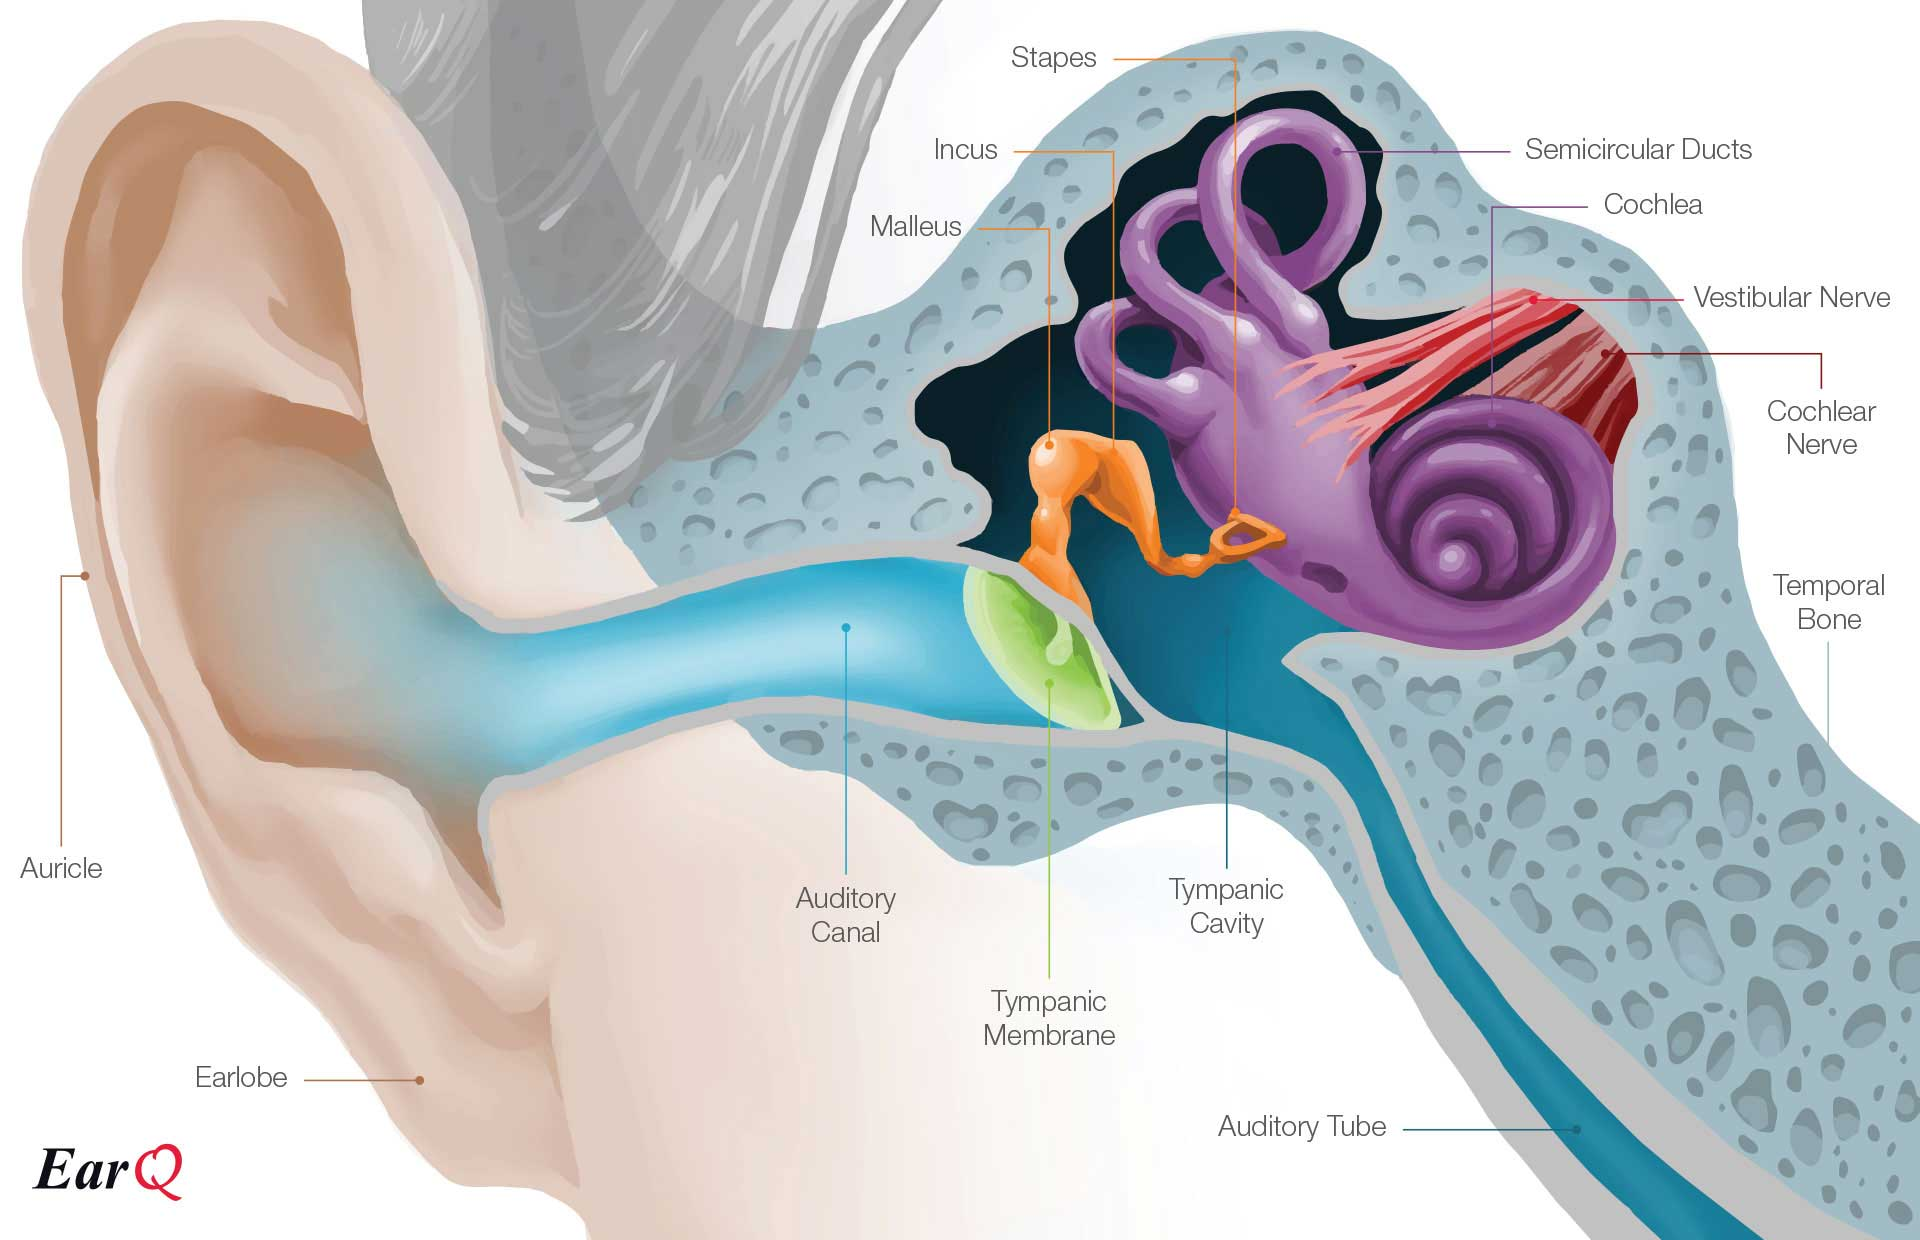 anatomy of the ear | inner ear | middle ear | outer ear, Cephalic Vein